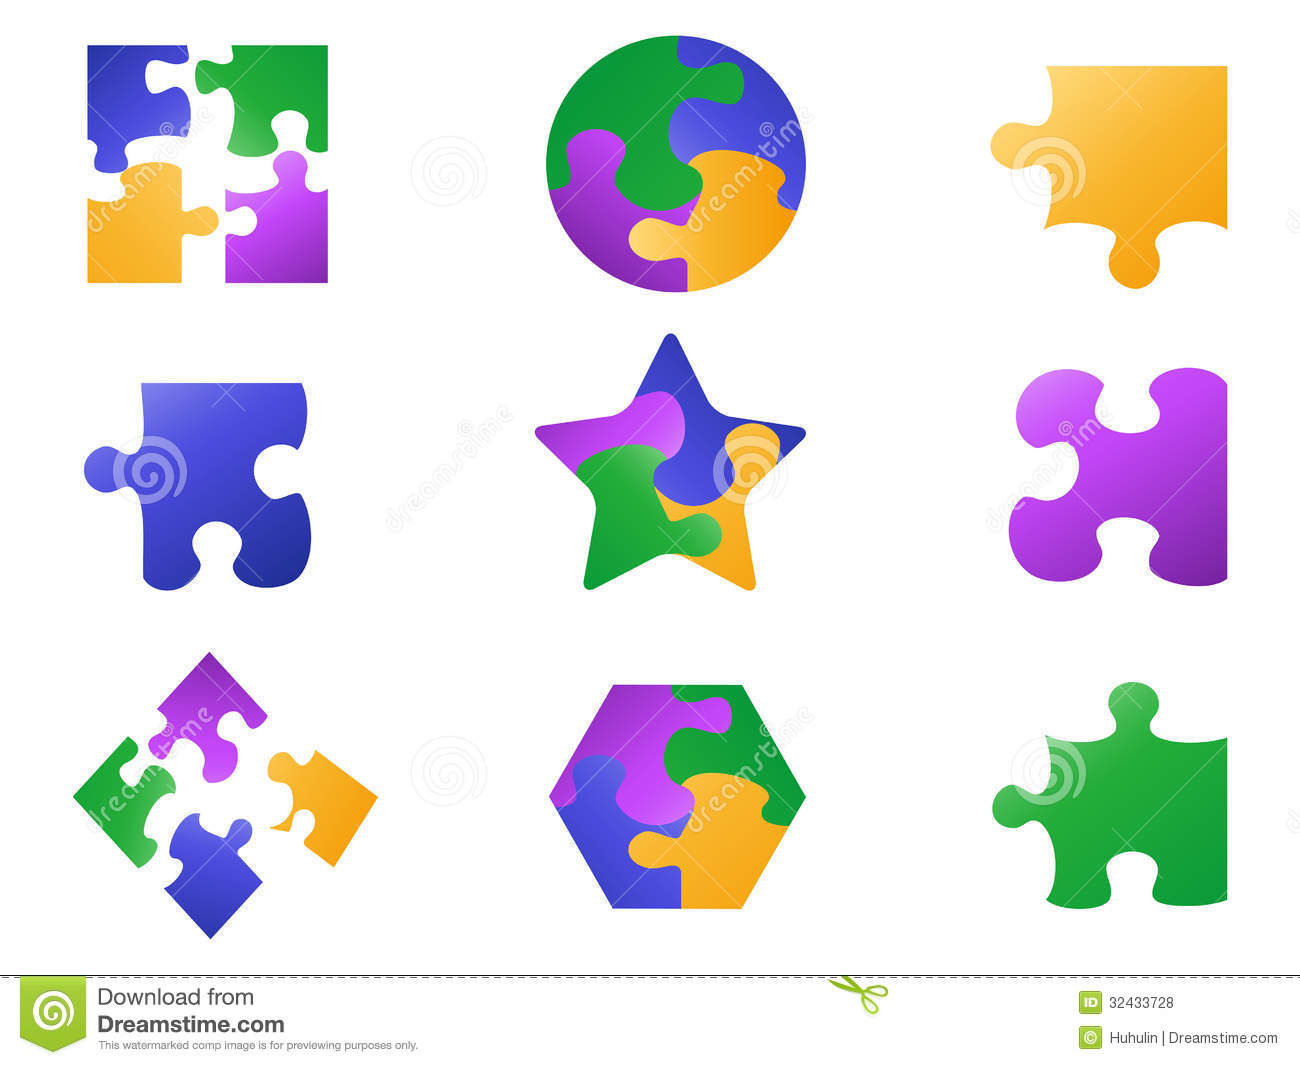 color jigsaw puzzle icon royalty free stock photos image 32433728